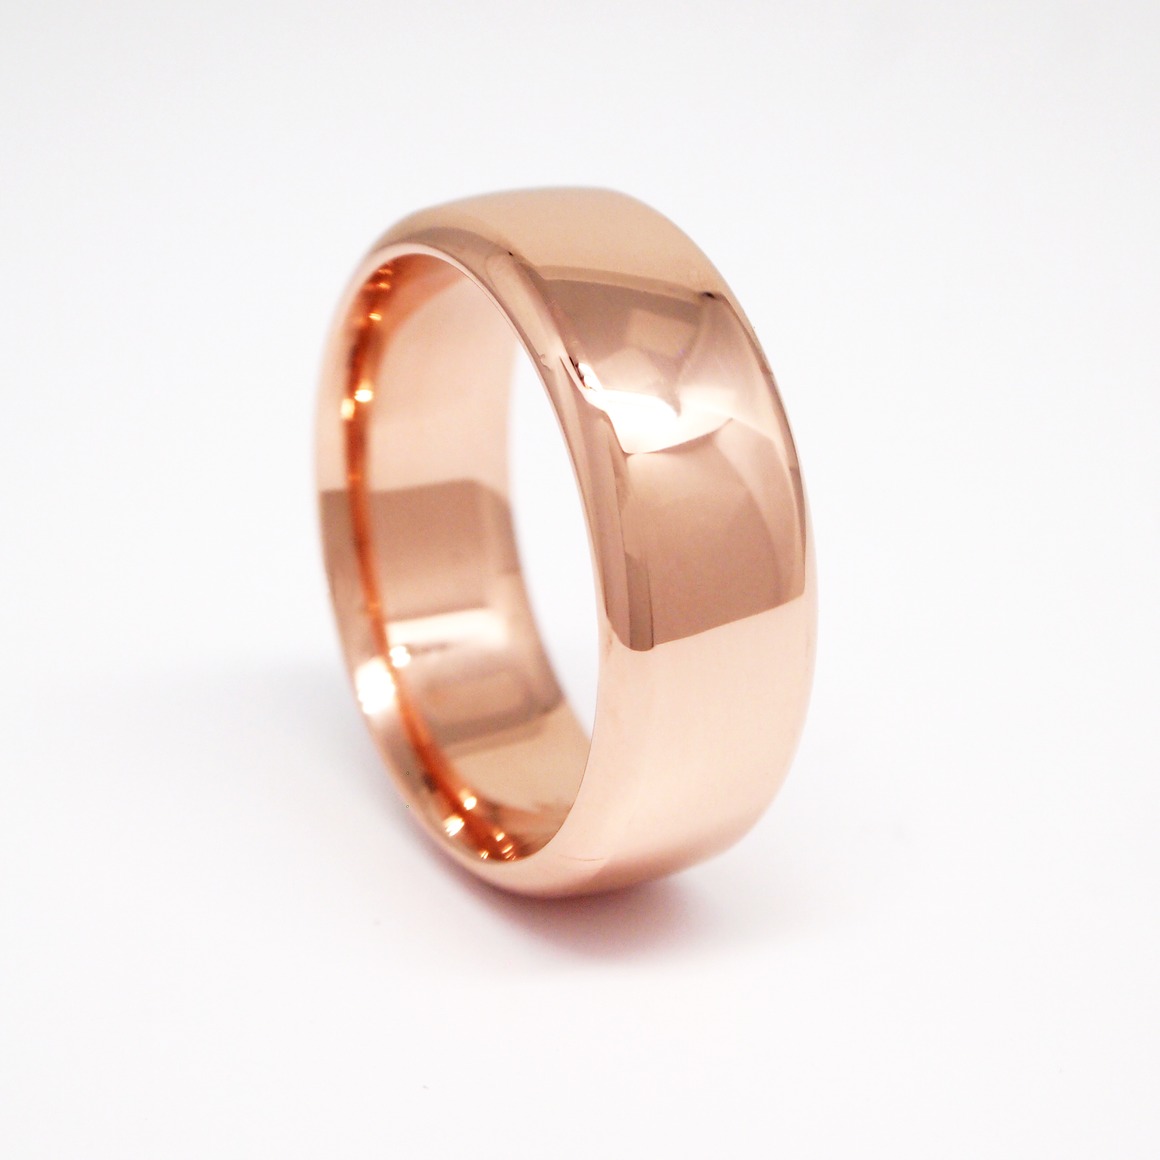 14K rose gold heavy weight 8mm men's wedding band featuring a low dome and high polish finish.